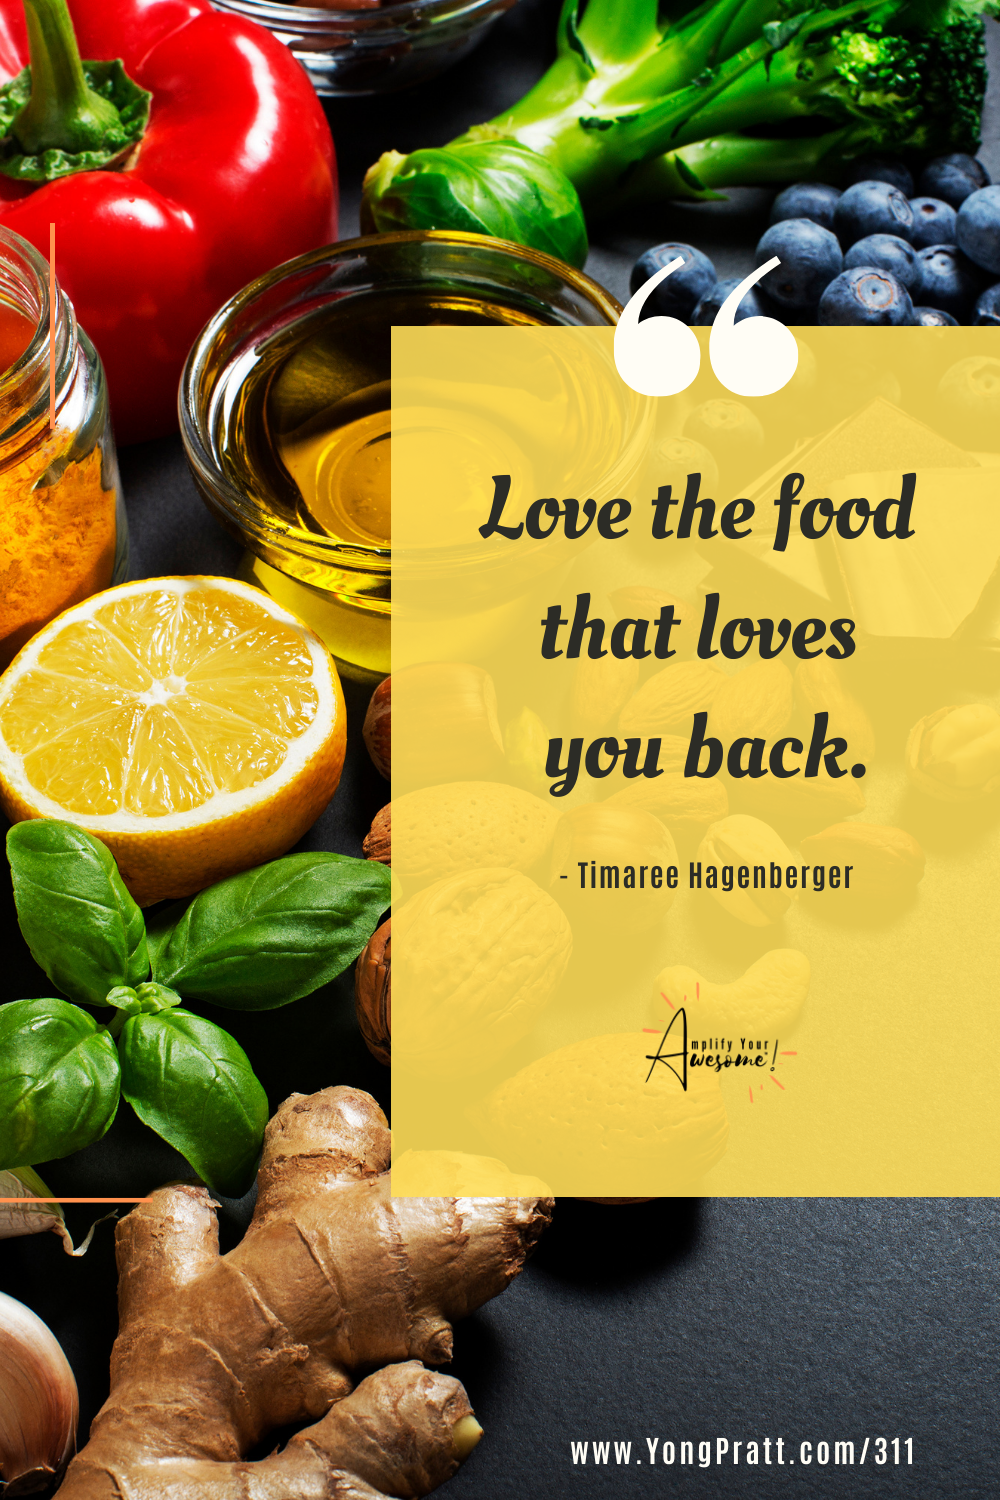 Love the food that loves you back